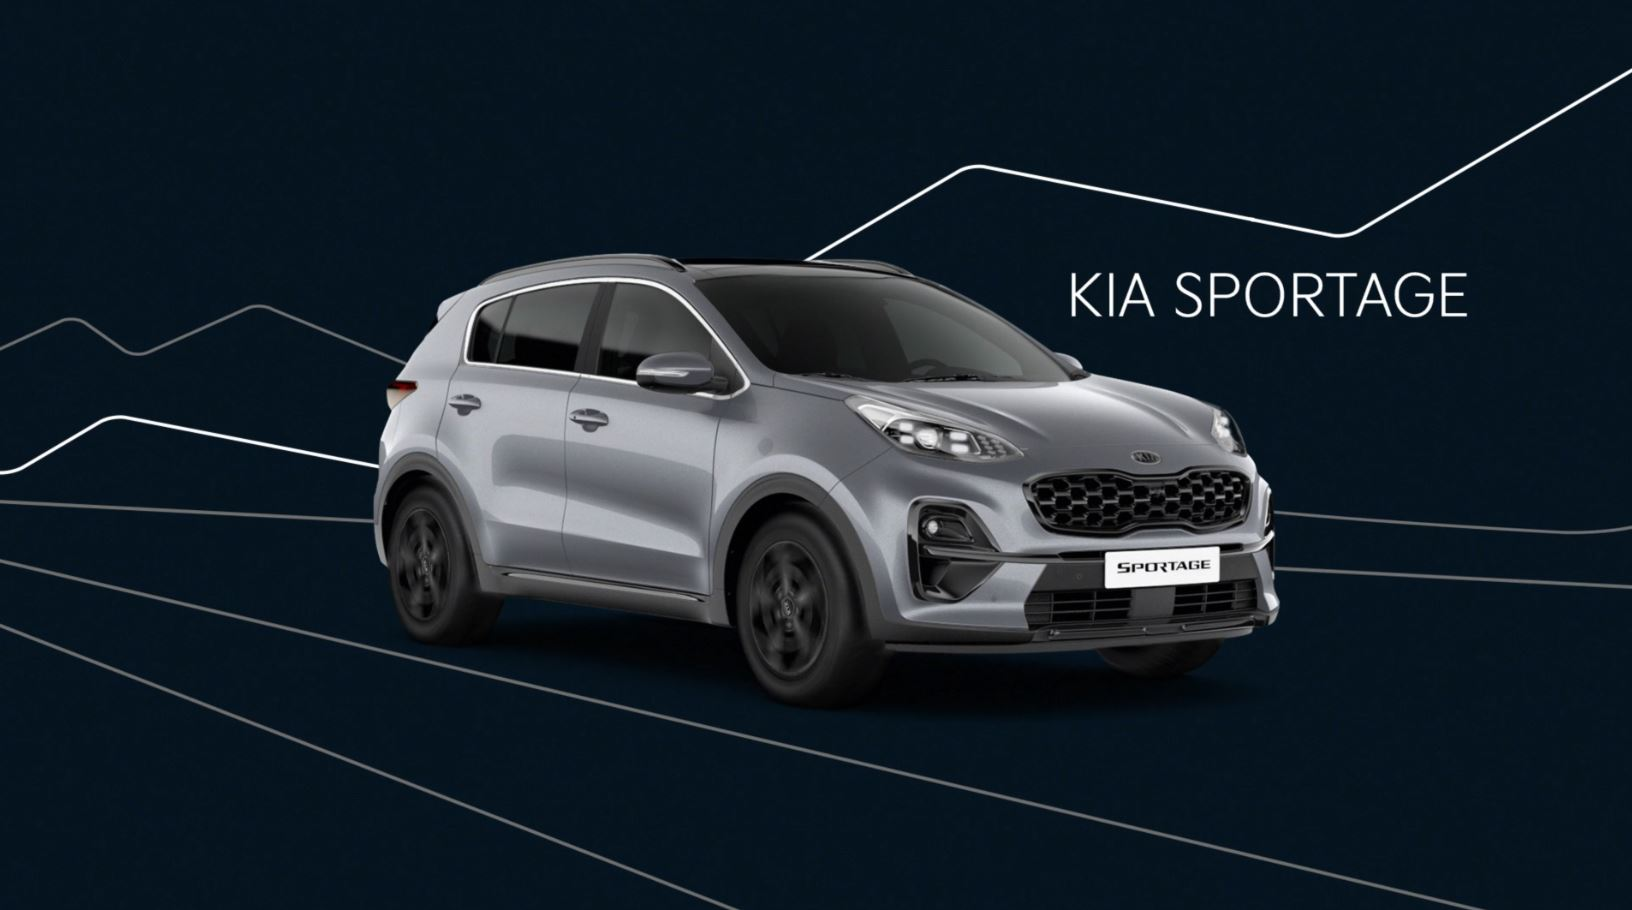 kia-sportage-black-edition.jpg